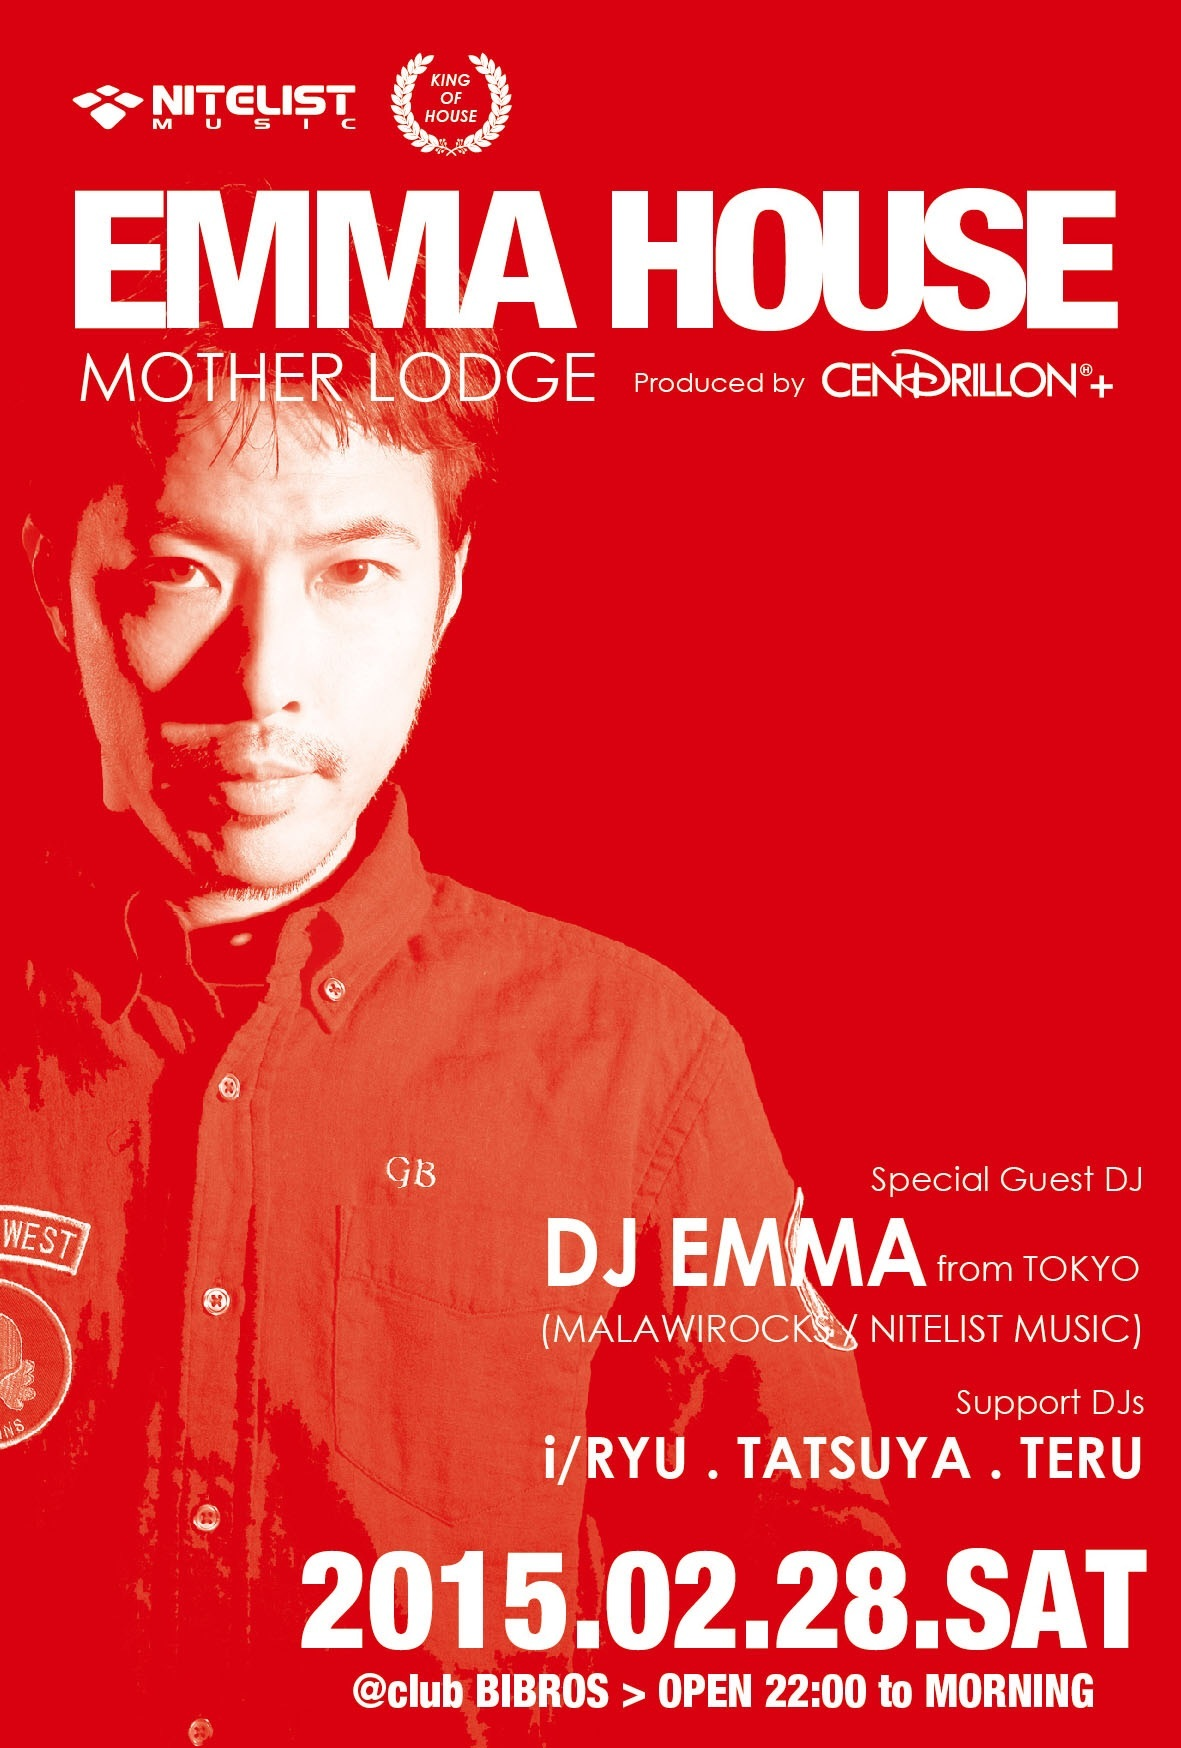 02.28.SAT 2015 - EMMA HOUSE ❌ Mother Lodge - @clubBIBROS_f0148146_11025241.jpg